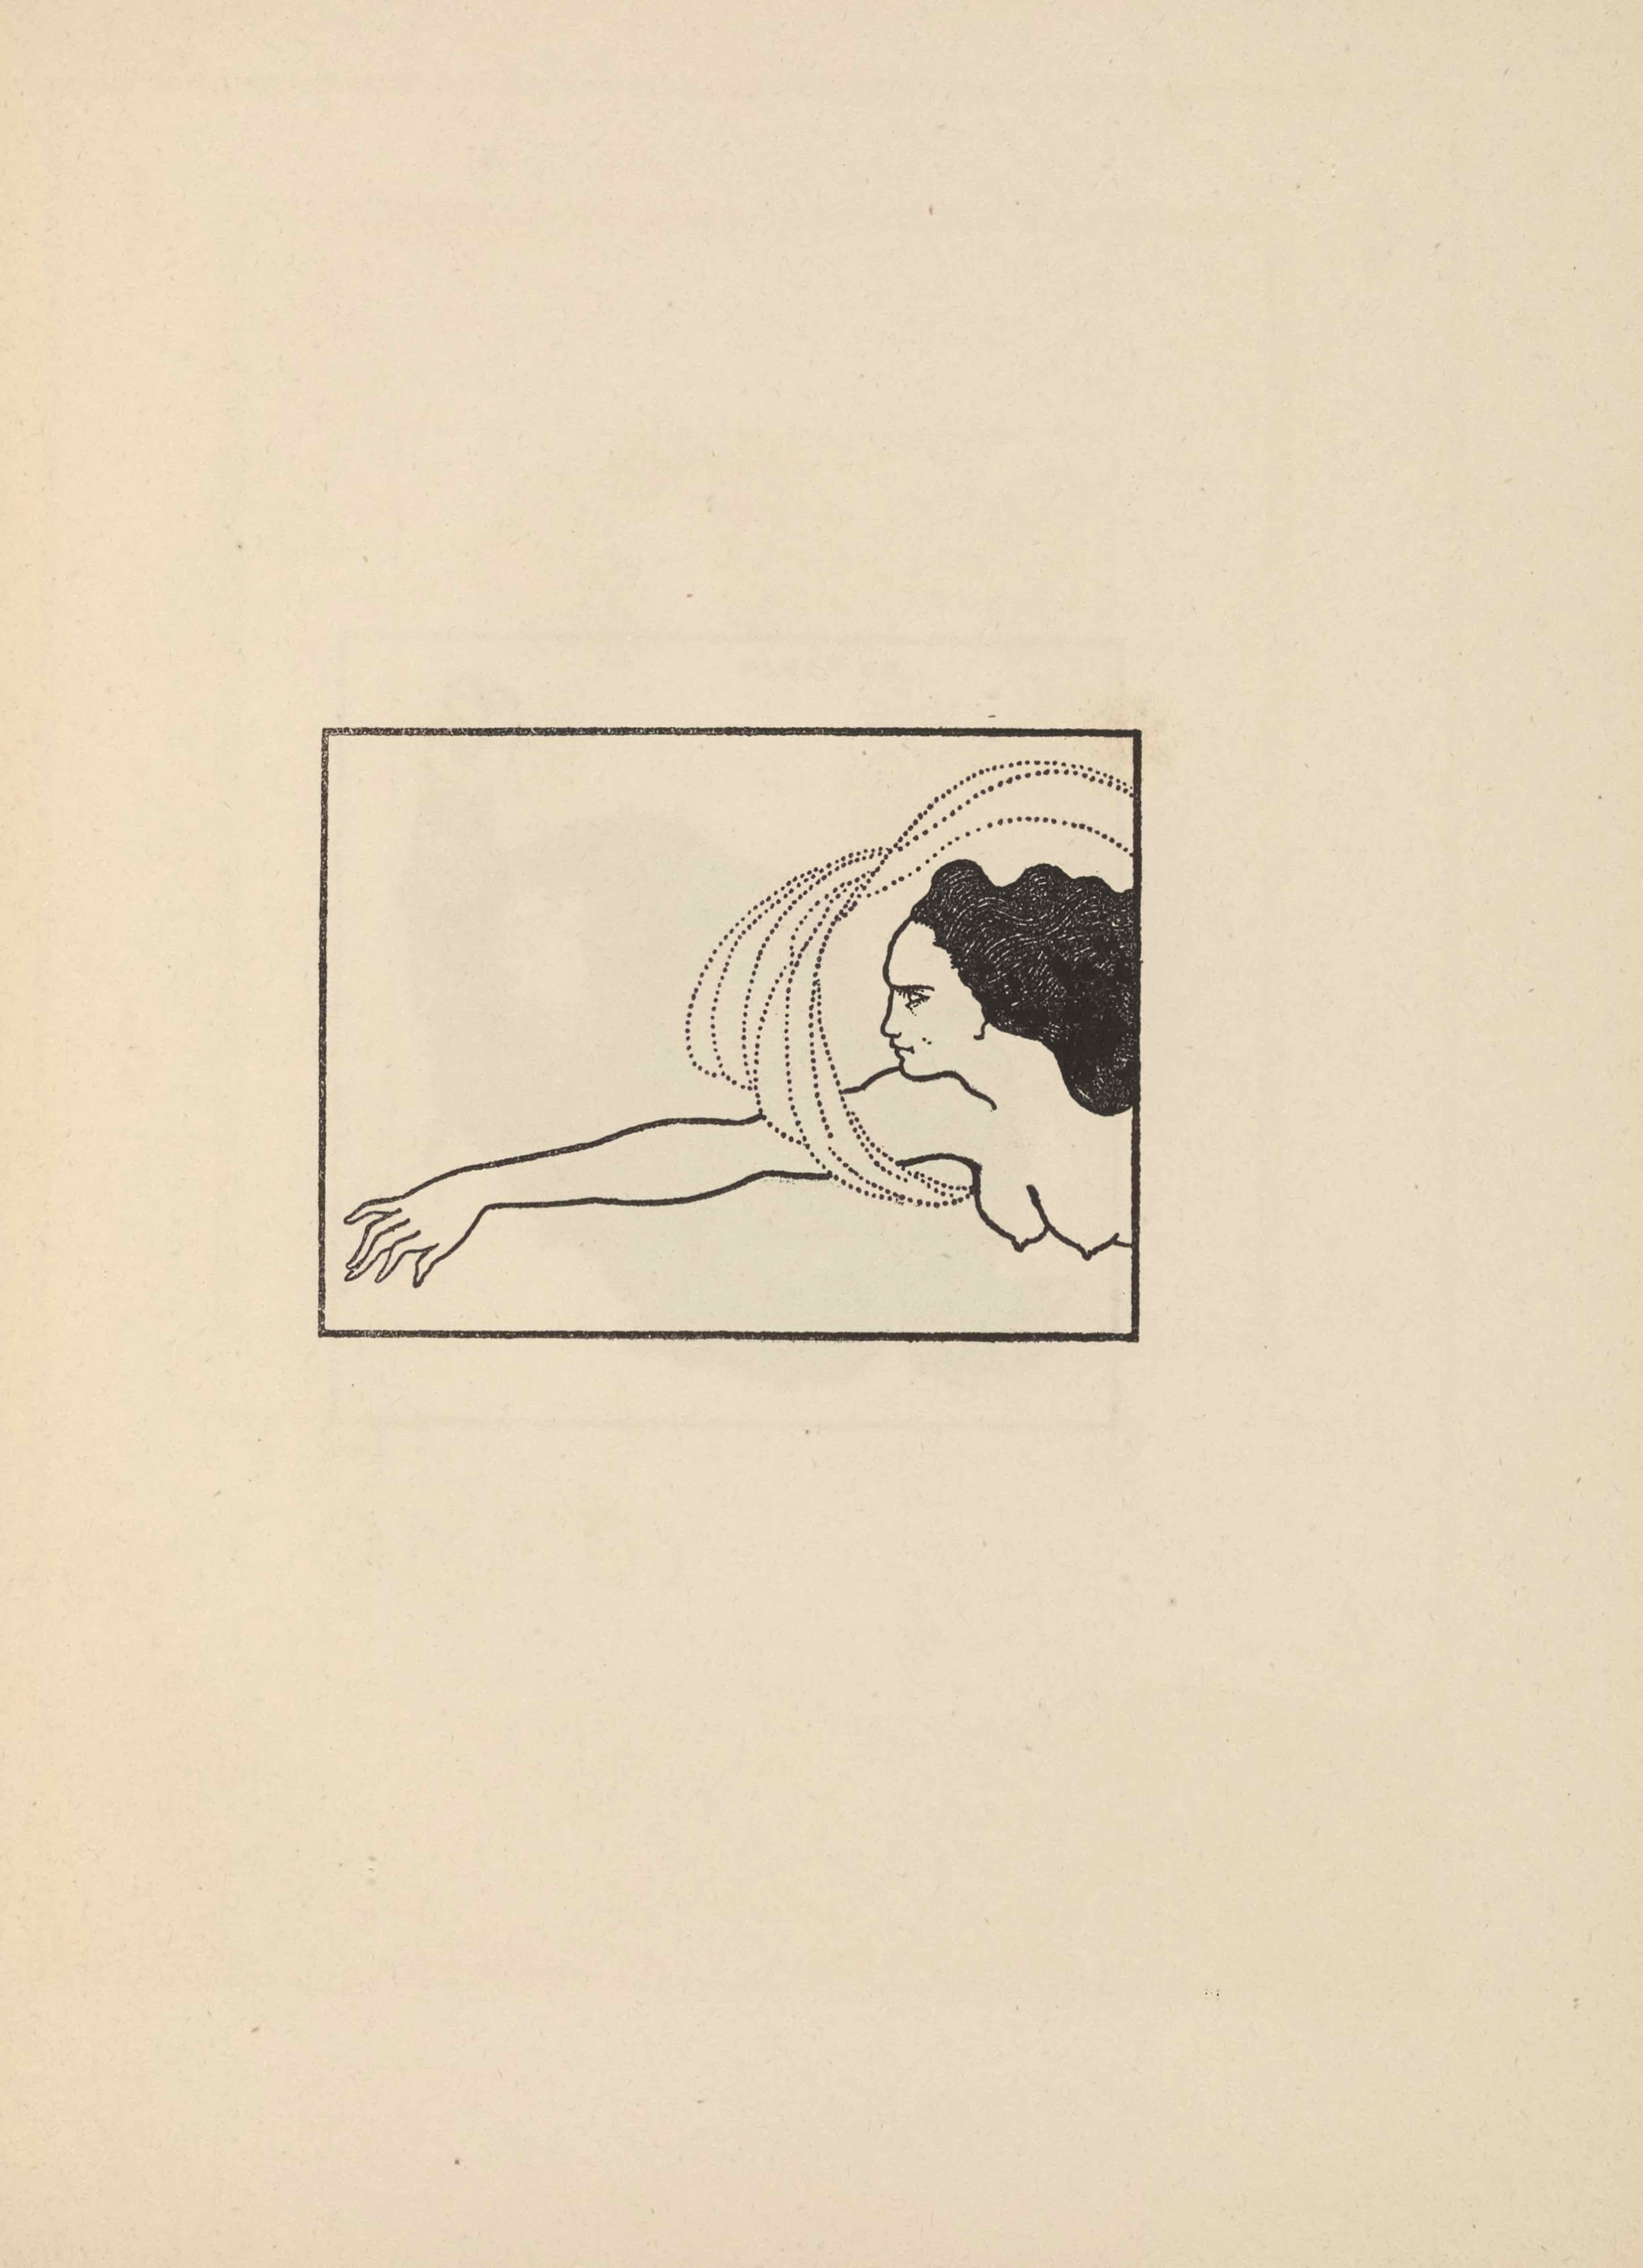 The line-block reproduction of Beardsley's pen-and-ink drawing is in portrait orientation and appears as a rectangular framed image on about a third of the page space. The illustration is of the head and torso of a woman in profile with black hair. She appears to be floating into frame from the right side. Her right arm is extended, and her hand almost touches the left border of the illustration. She is nude save for loops of cloth that wrap under her upper arm and extend back behind her head and out of frame.